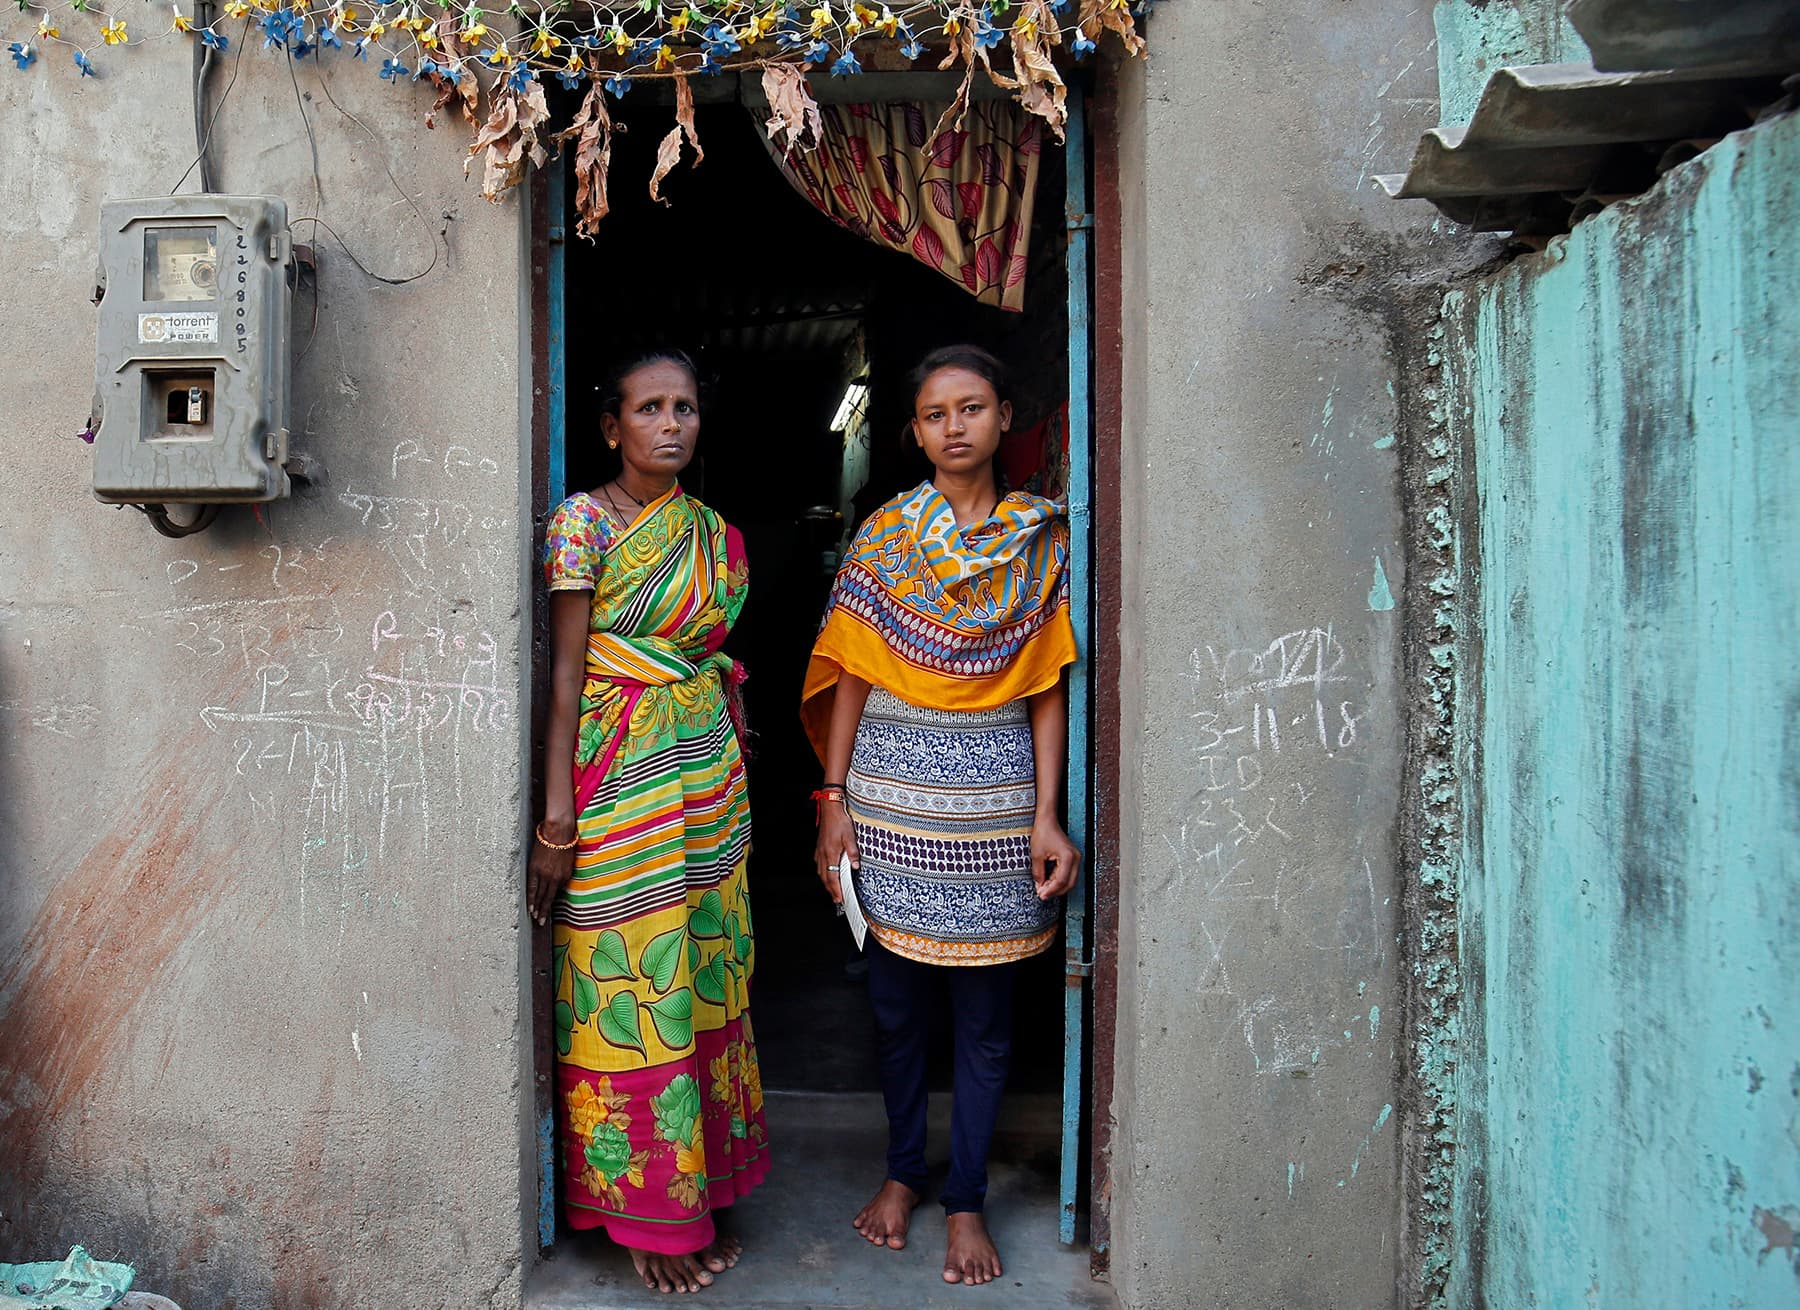 Pooja Jadhav, 18, poses with her mother as they stand at the entrance of their house in Ahmedabad, April 12. — Reuters